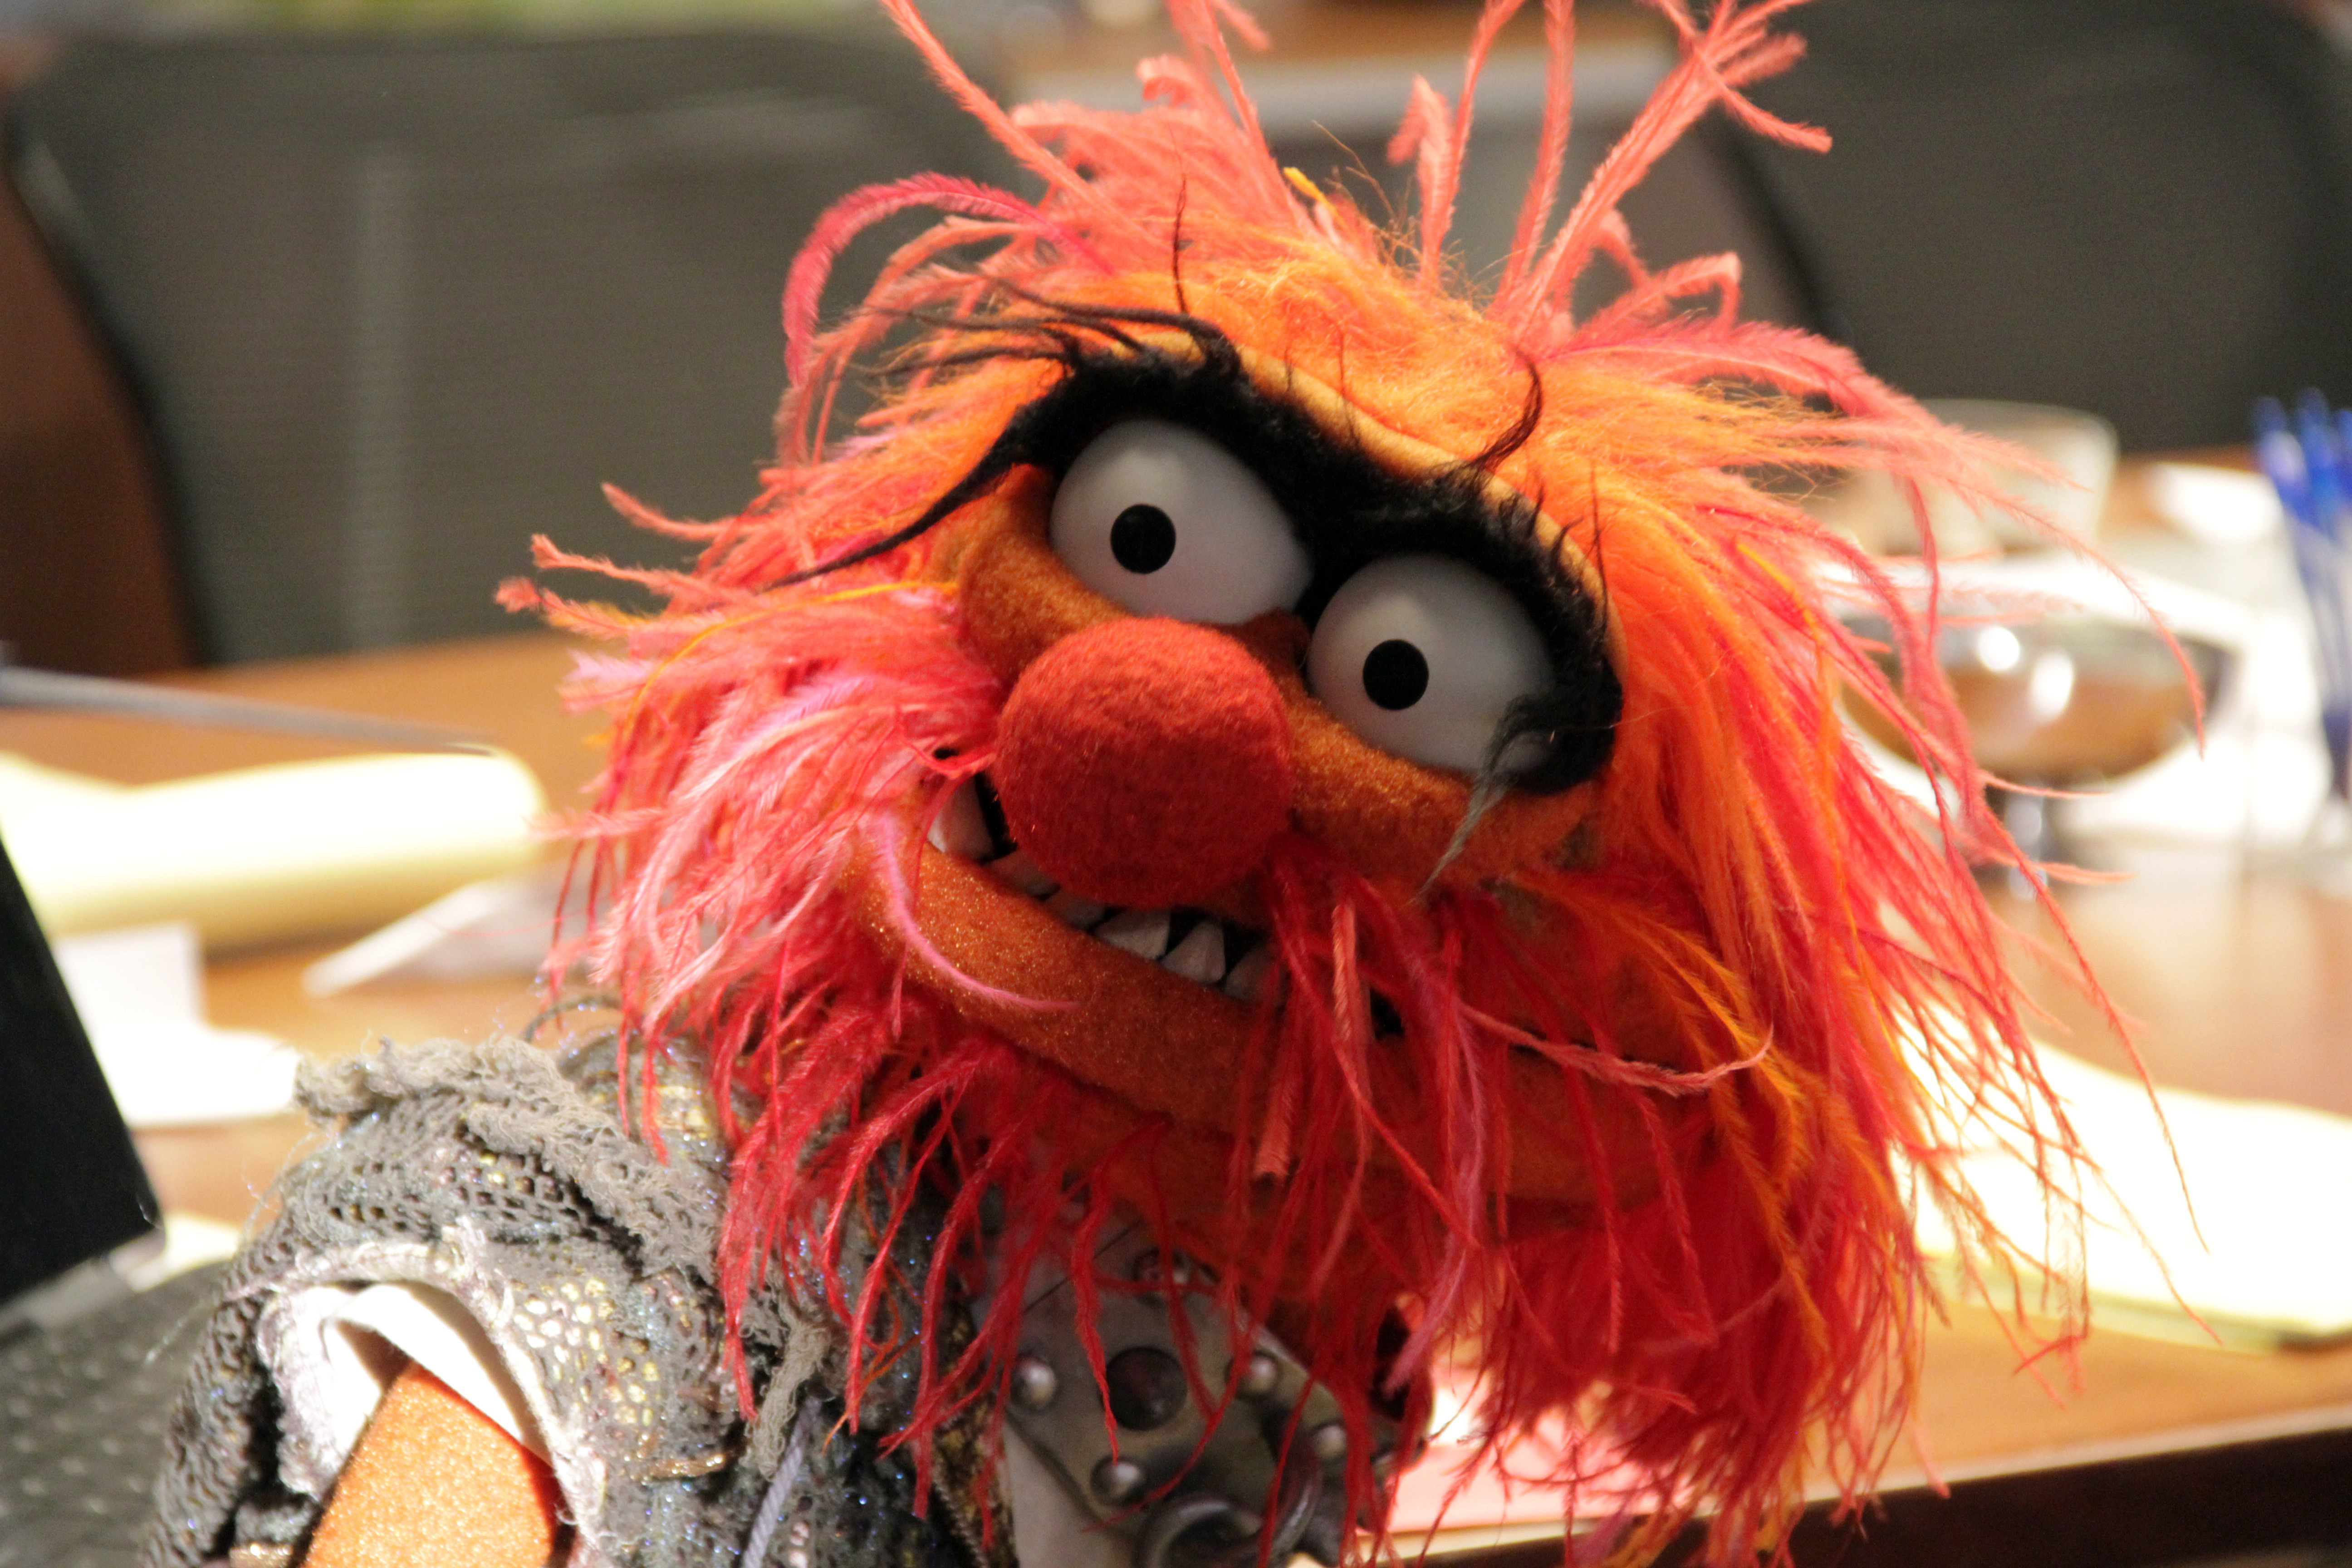 12 new photos from the muppets tv show 2015 - Animal muppet images ...